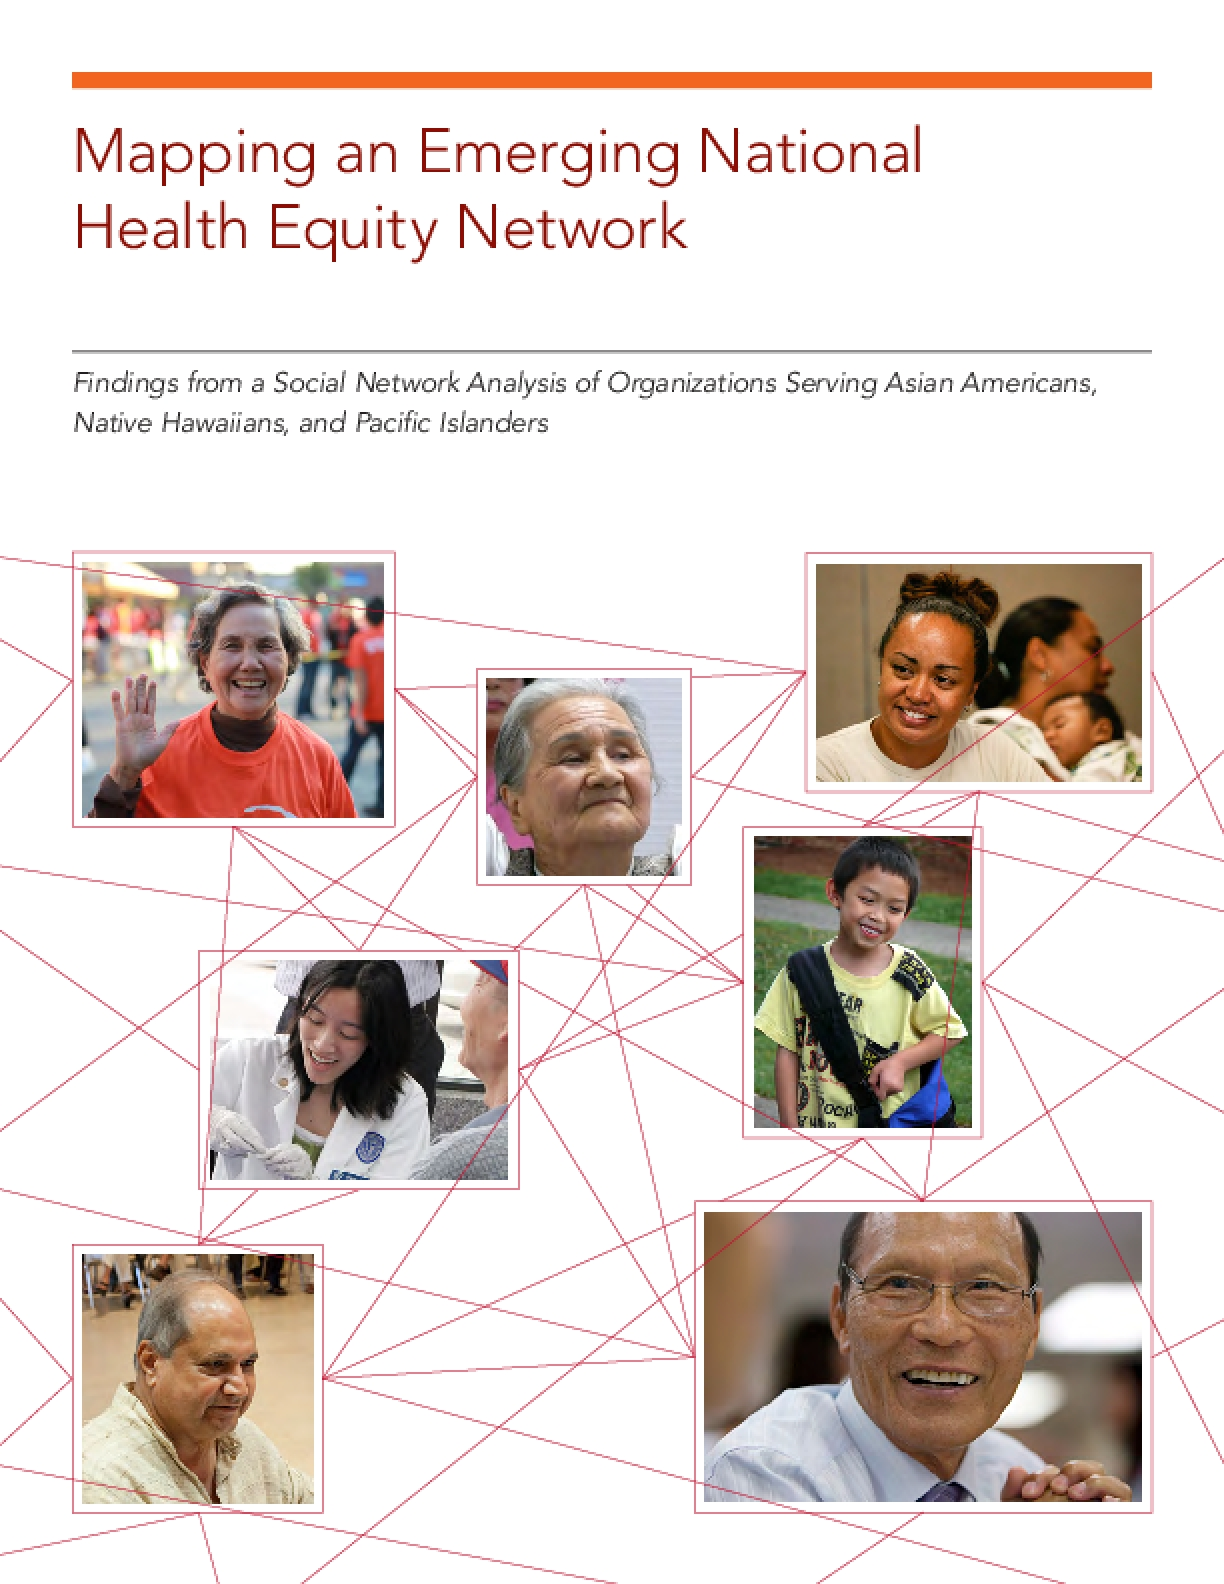 Mapping an Emerging National Health Equity Network